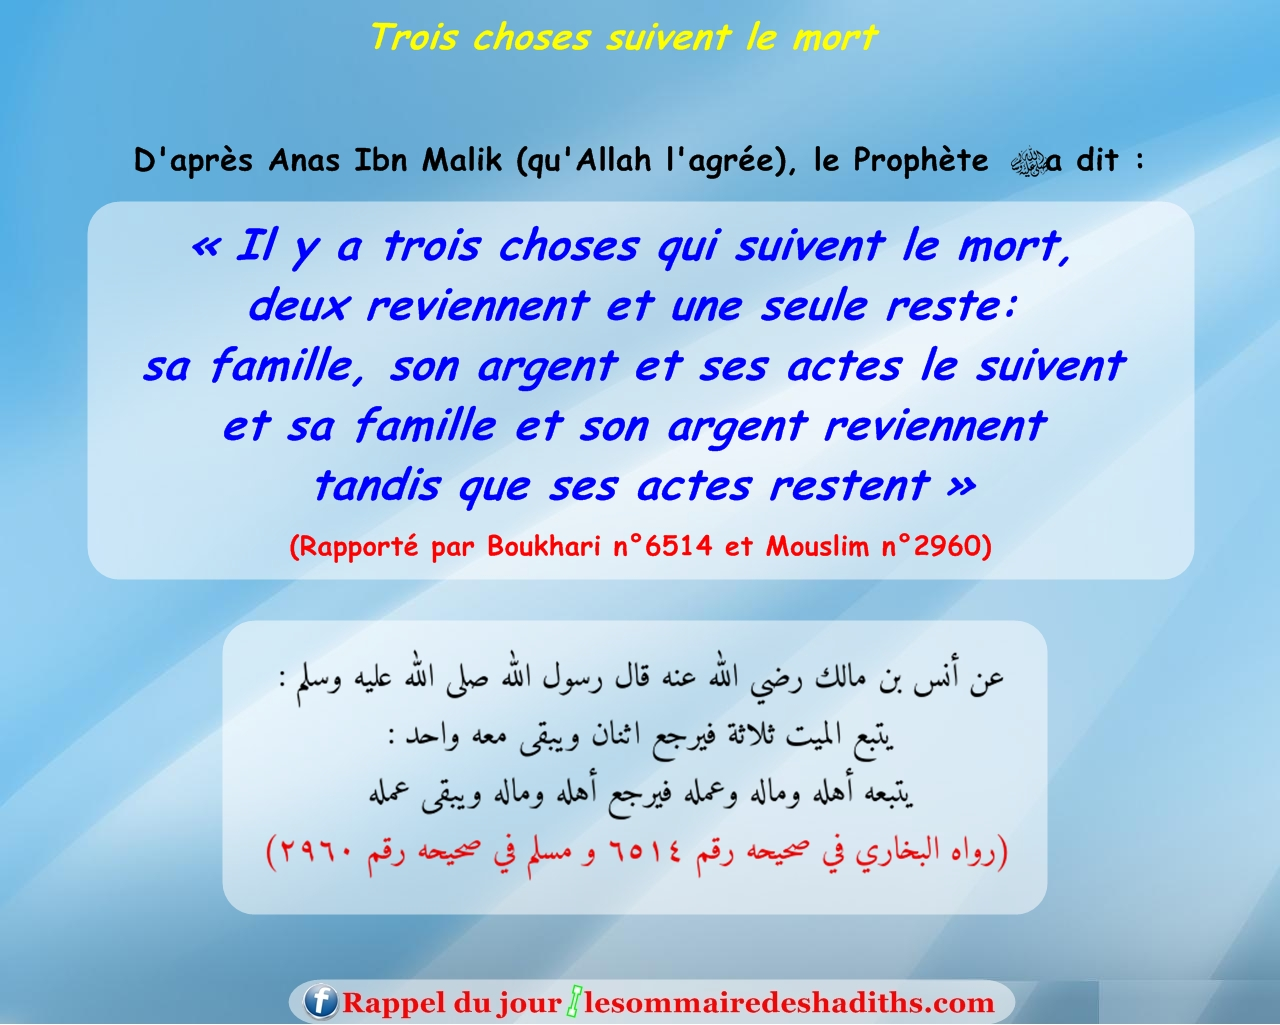 Hadith Trois choses suivent le mort (Anas Ibn Malik)